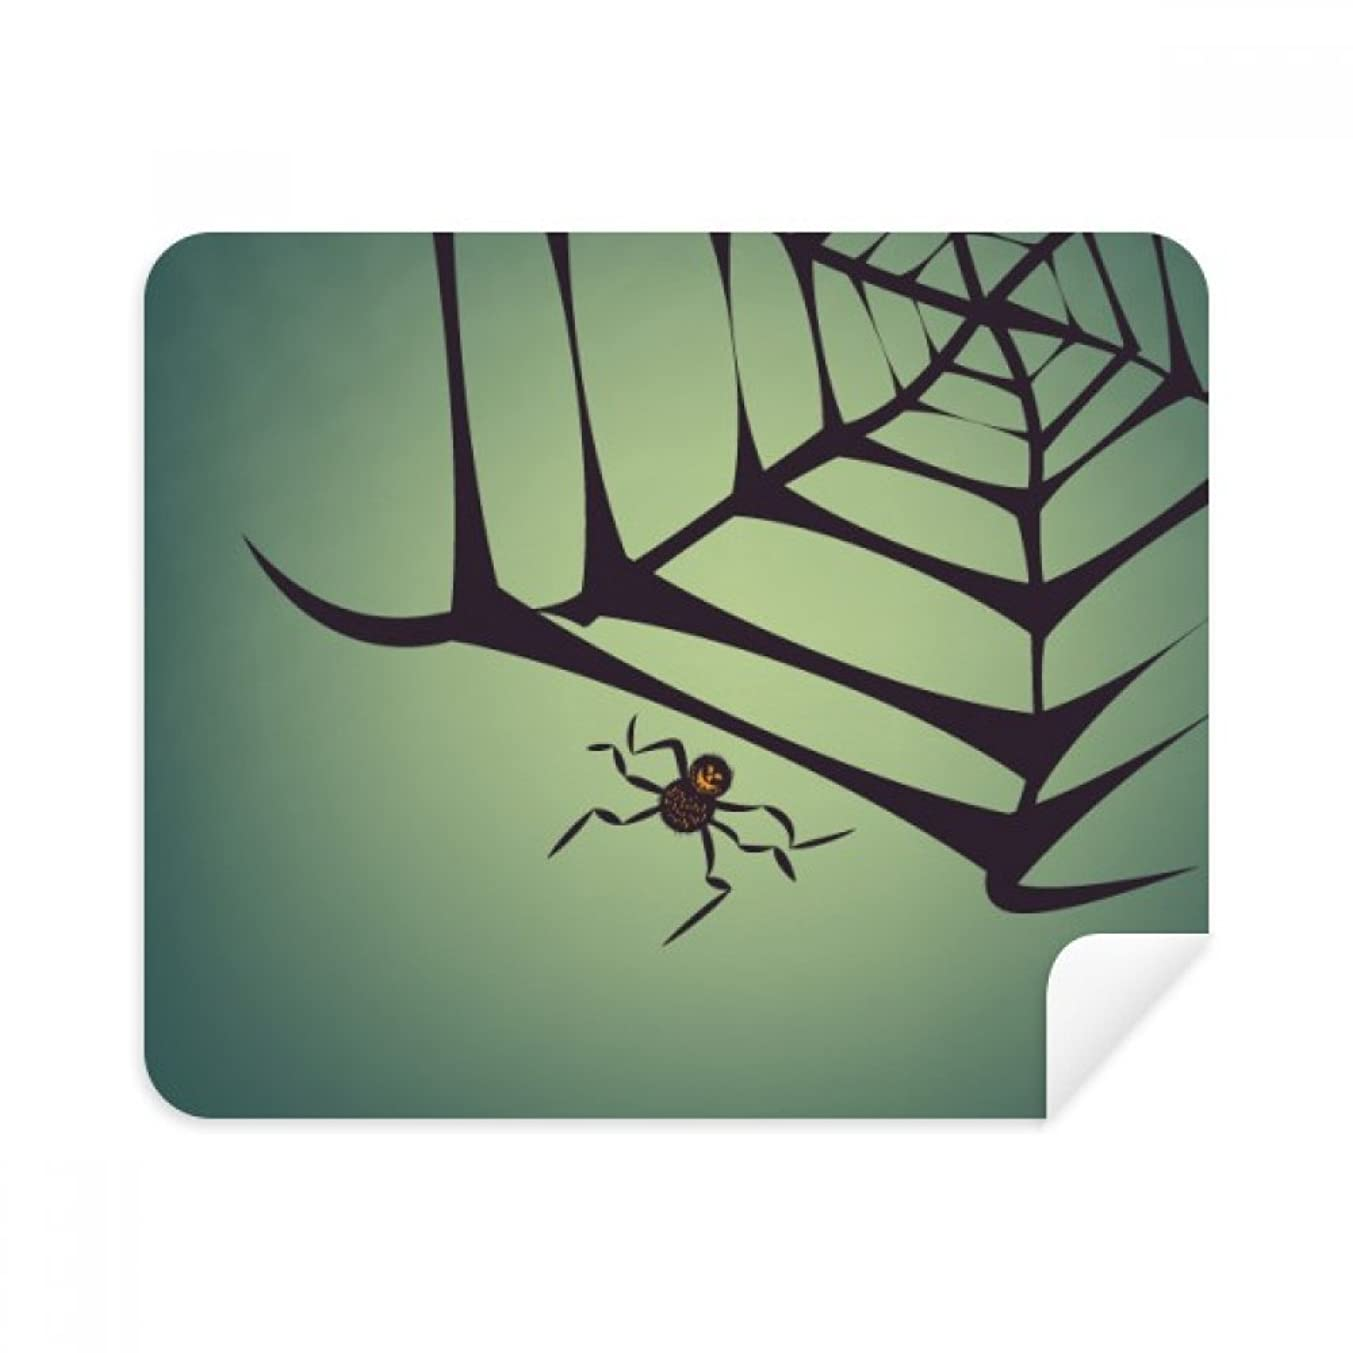 Black Spider Net Halloween Phone Screen Cleaner Glasses Cleaning Cloth 2pcs Suede Fabric